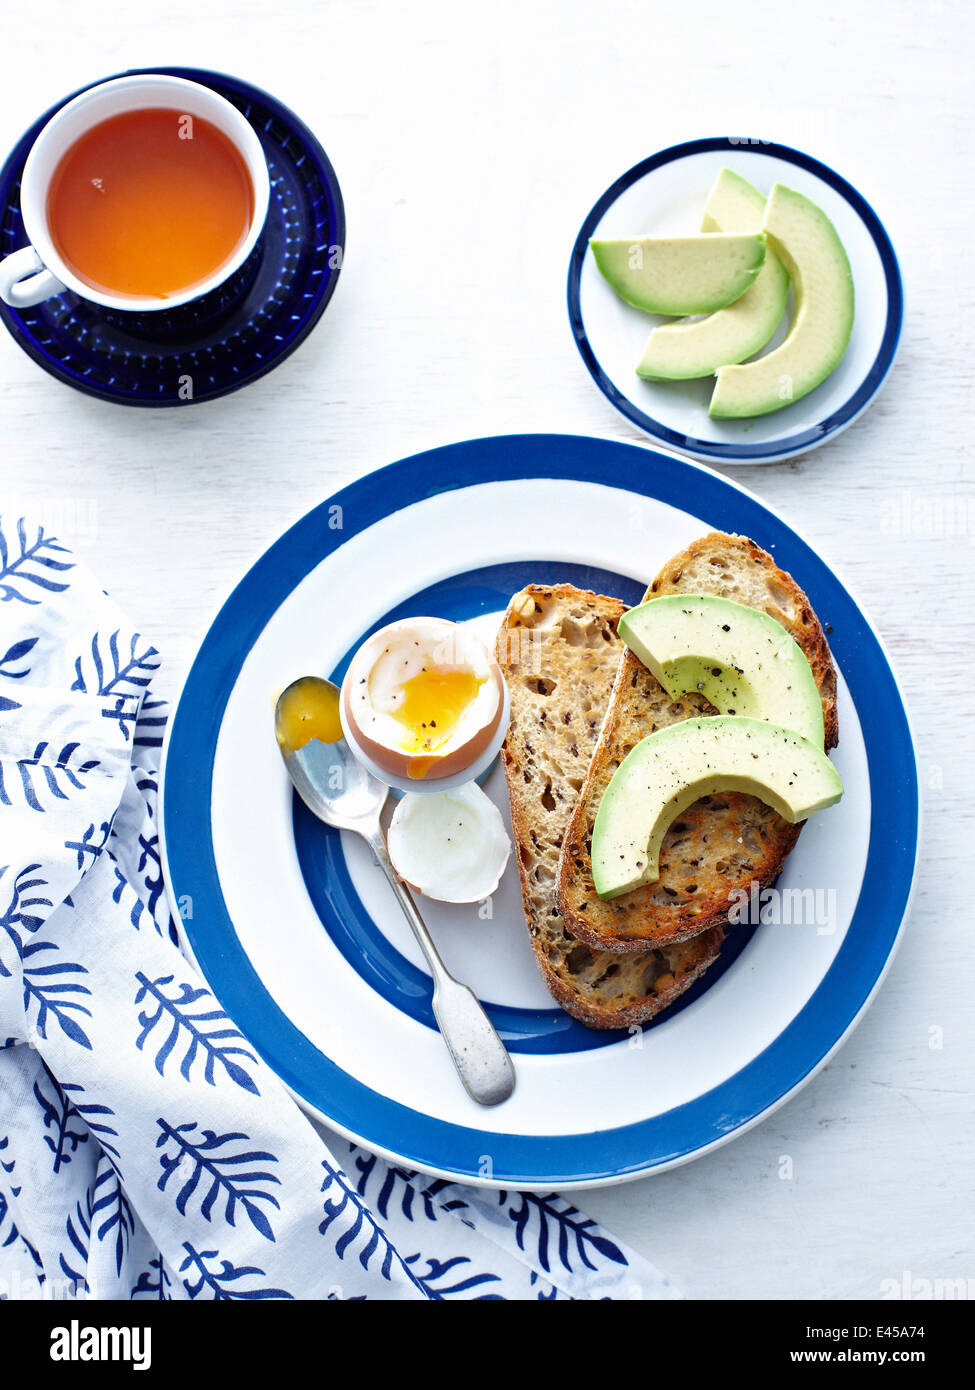 Boiled egg with toast and avocado - Stock Image